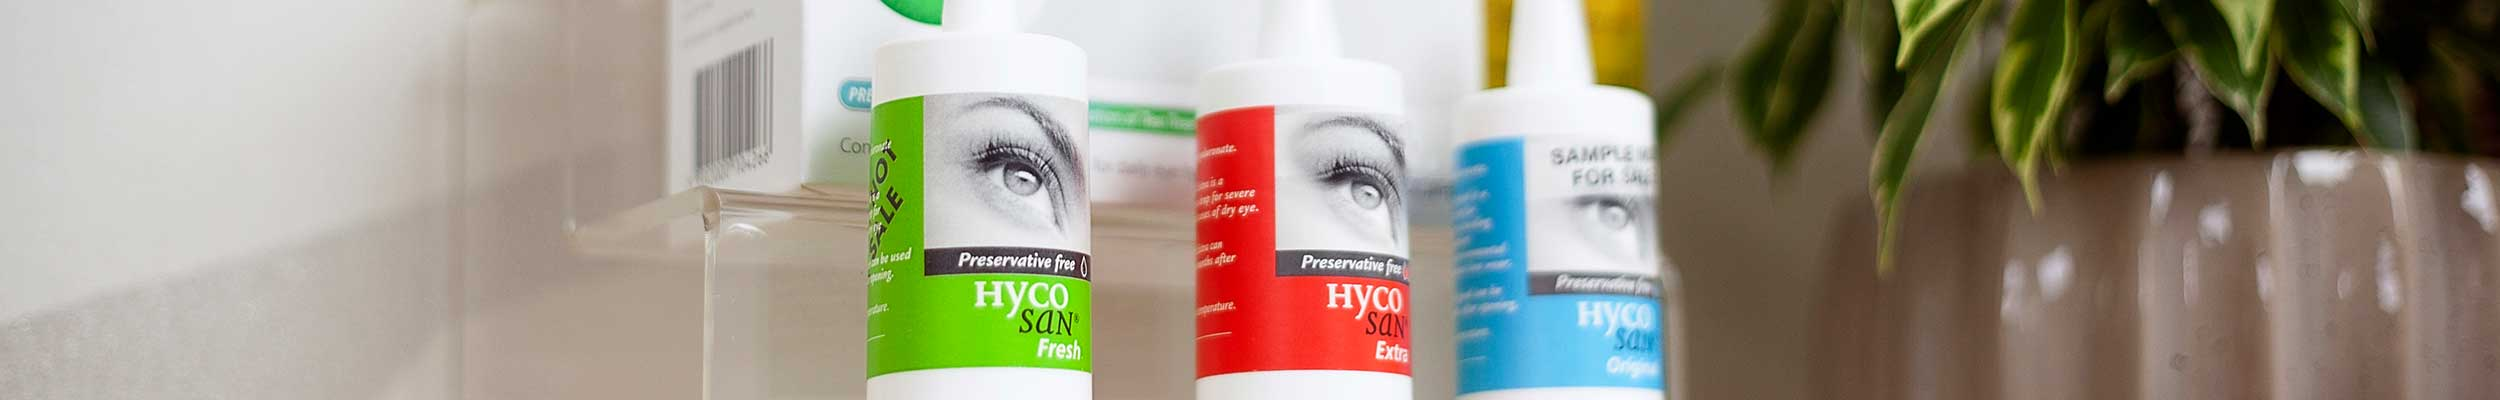 Eyecare supplements and eye health care products from North Opticians Chichester